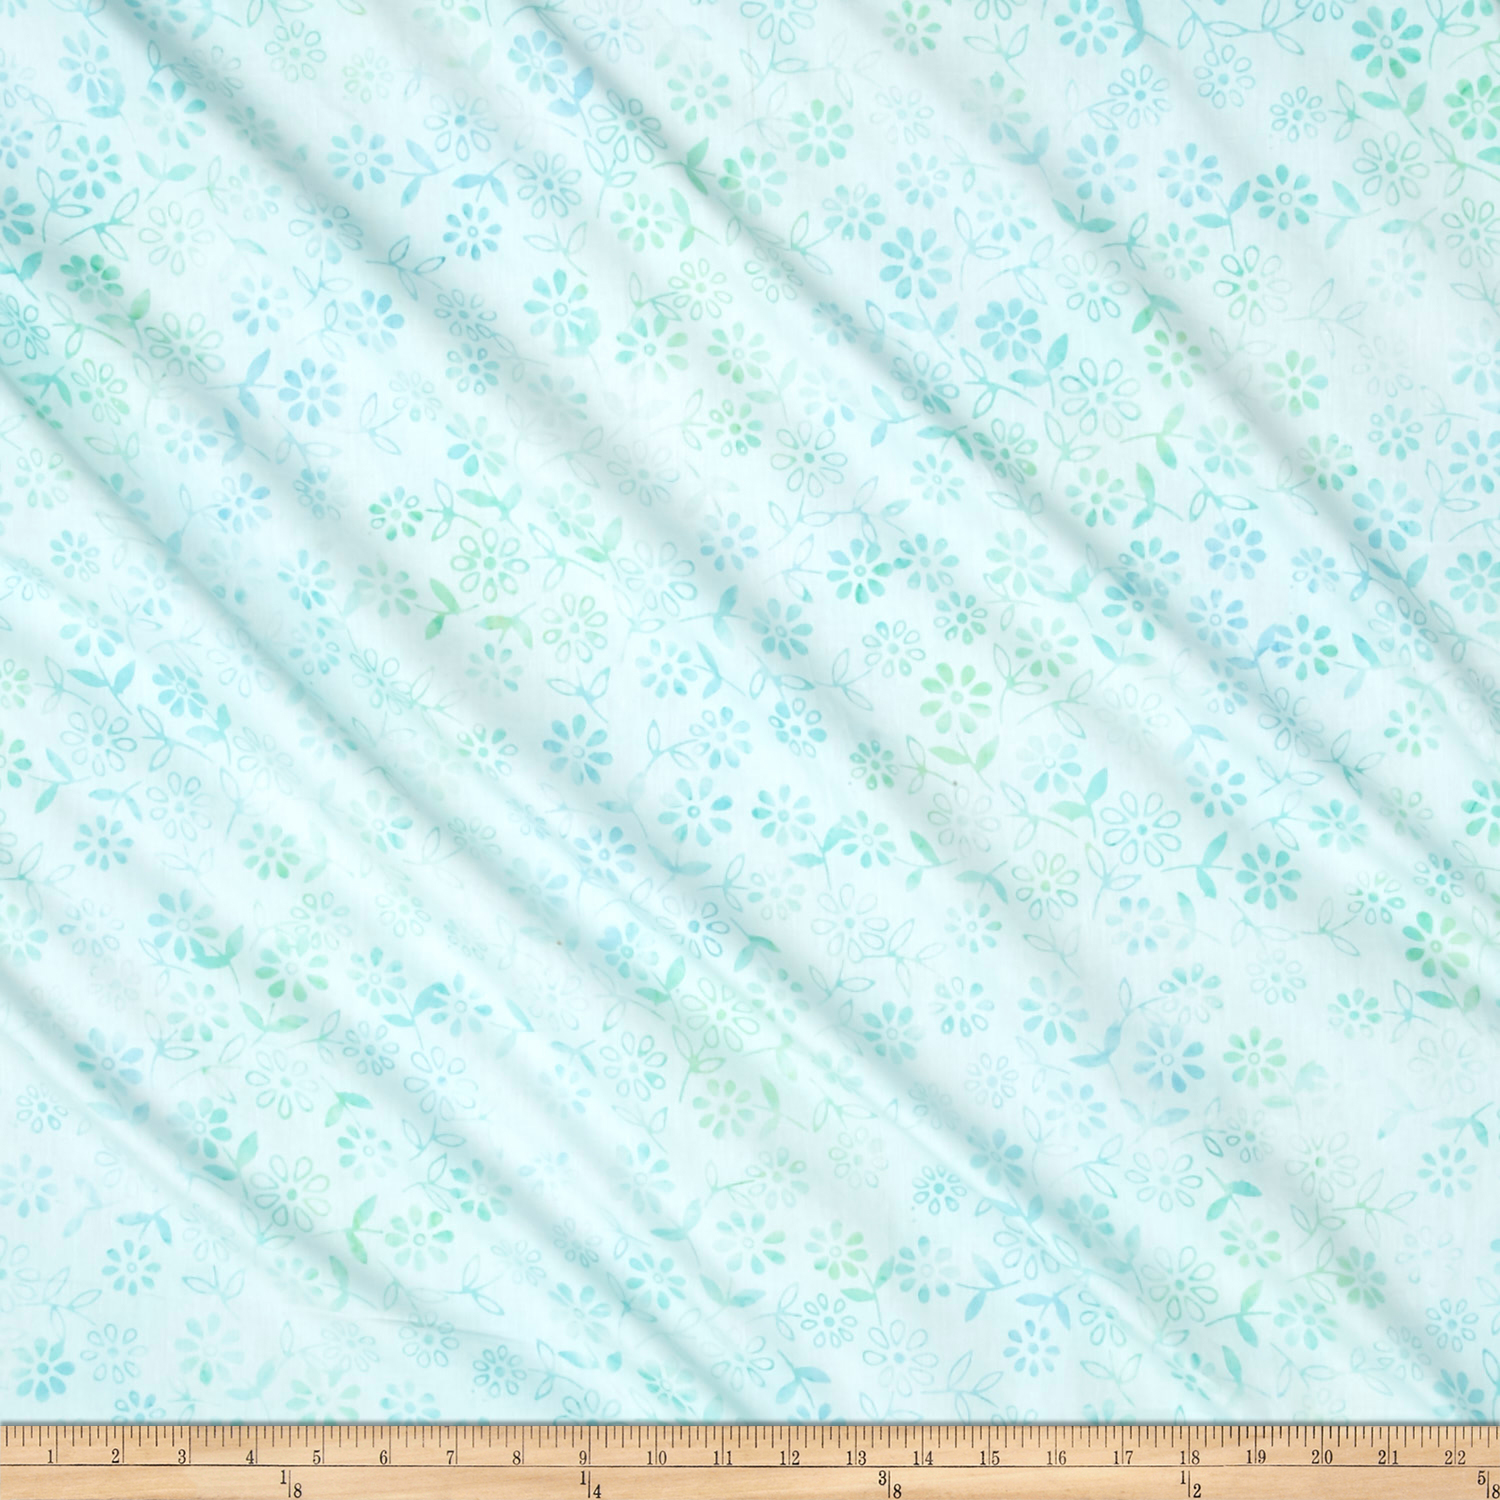 Anthology Batik Floral Pastel Aqua Fabric 0528440